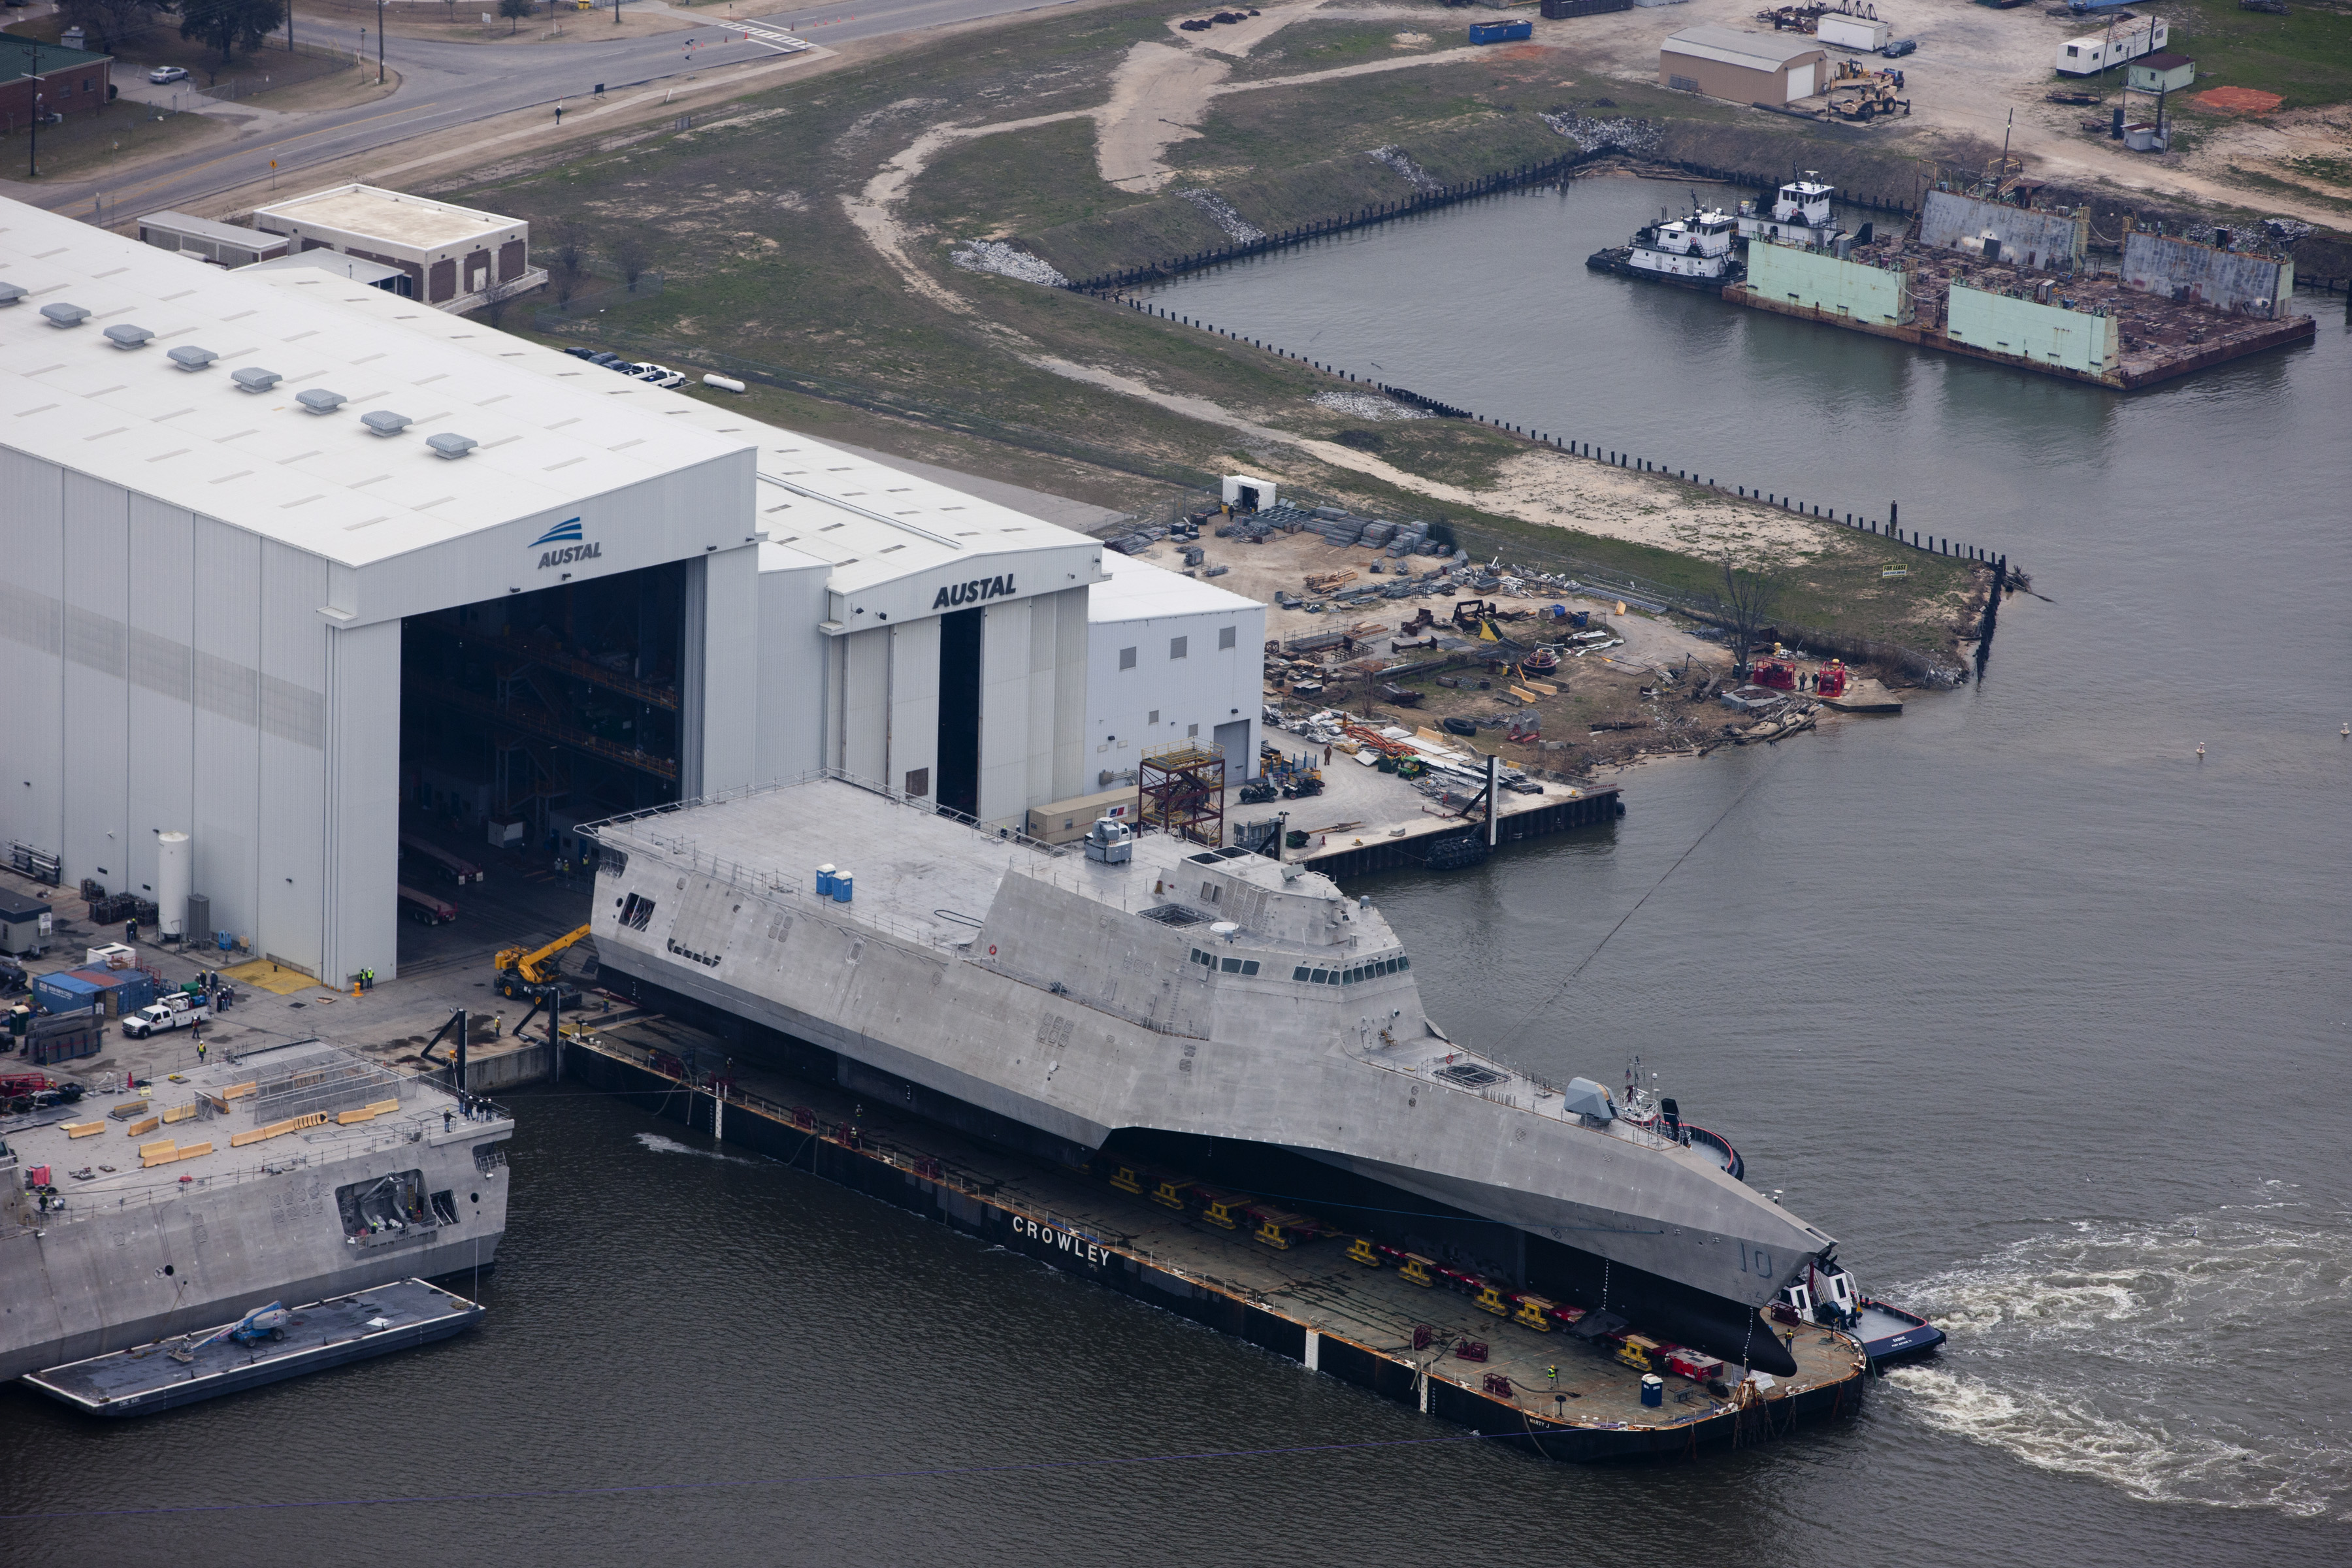 Aerial view of the future littoral combat ship USS Gabrielle Giffords (LCS 10) during its launch sequence at the Austal USA shipyard on Feb. 24, 2015. US Navy Photo